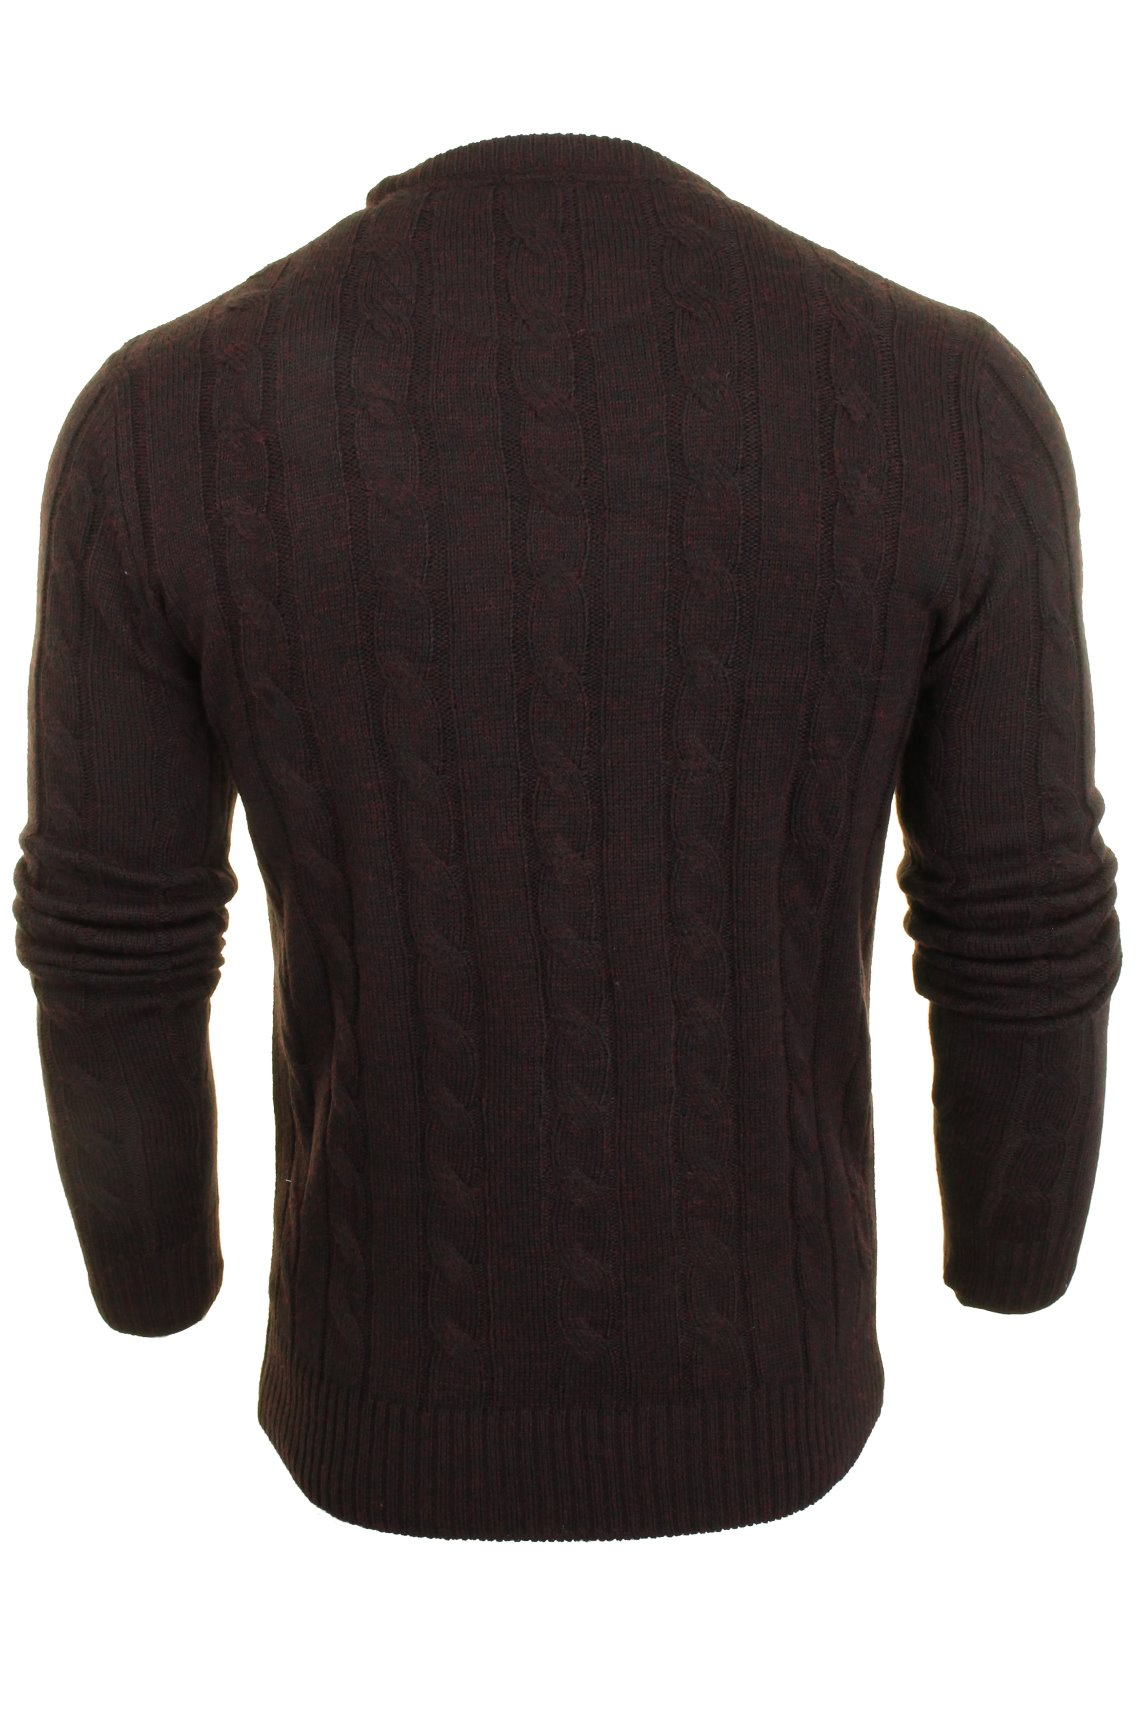 Brave-Soul-039-Maoism-039-Mens-Cable-Knit-Jumper thumbnail 5